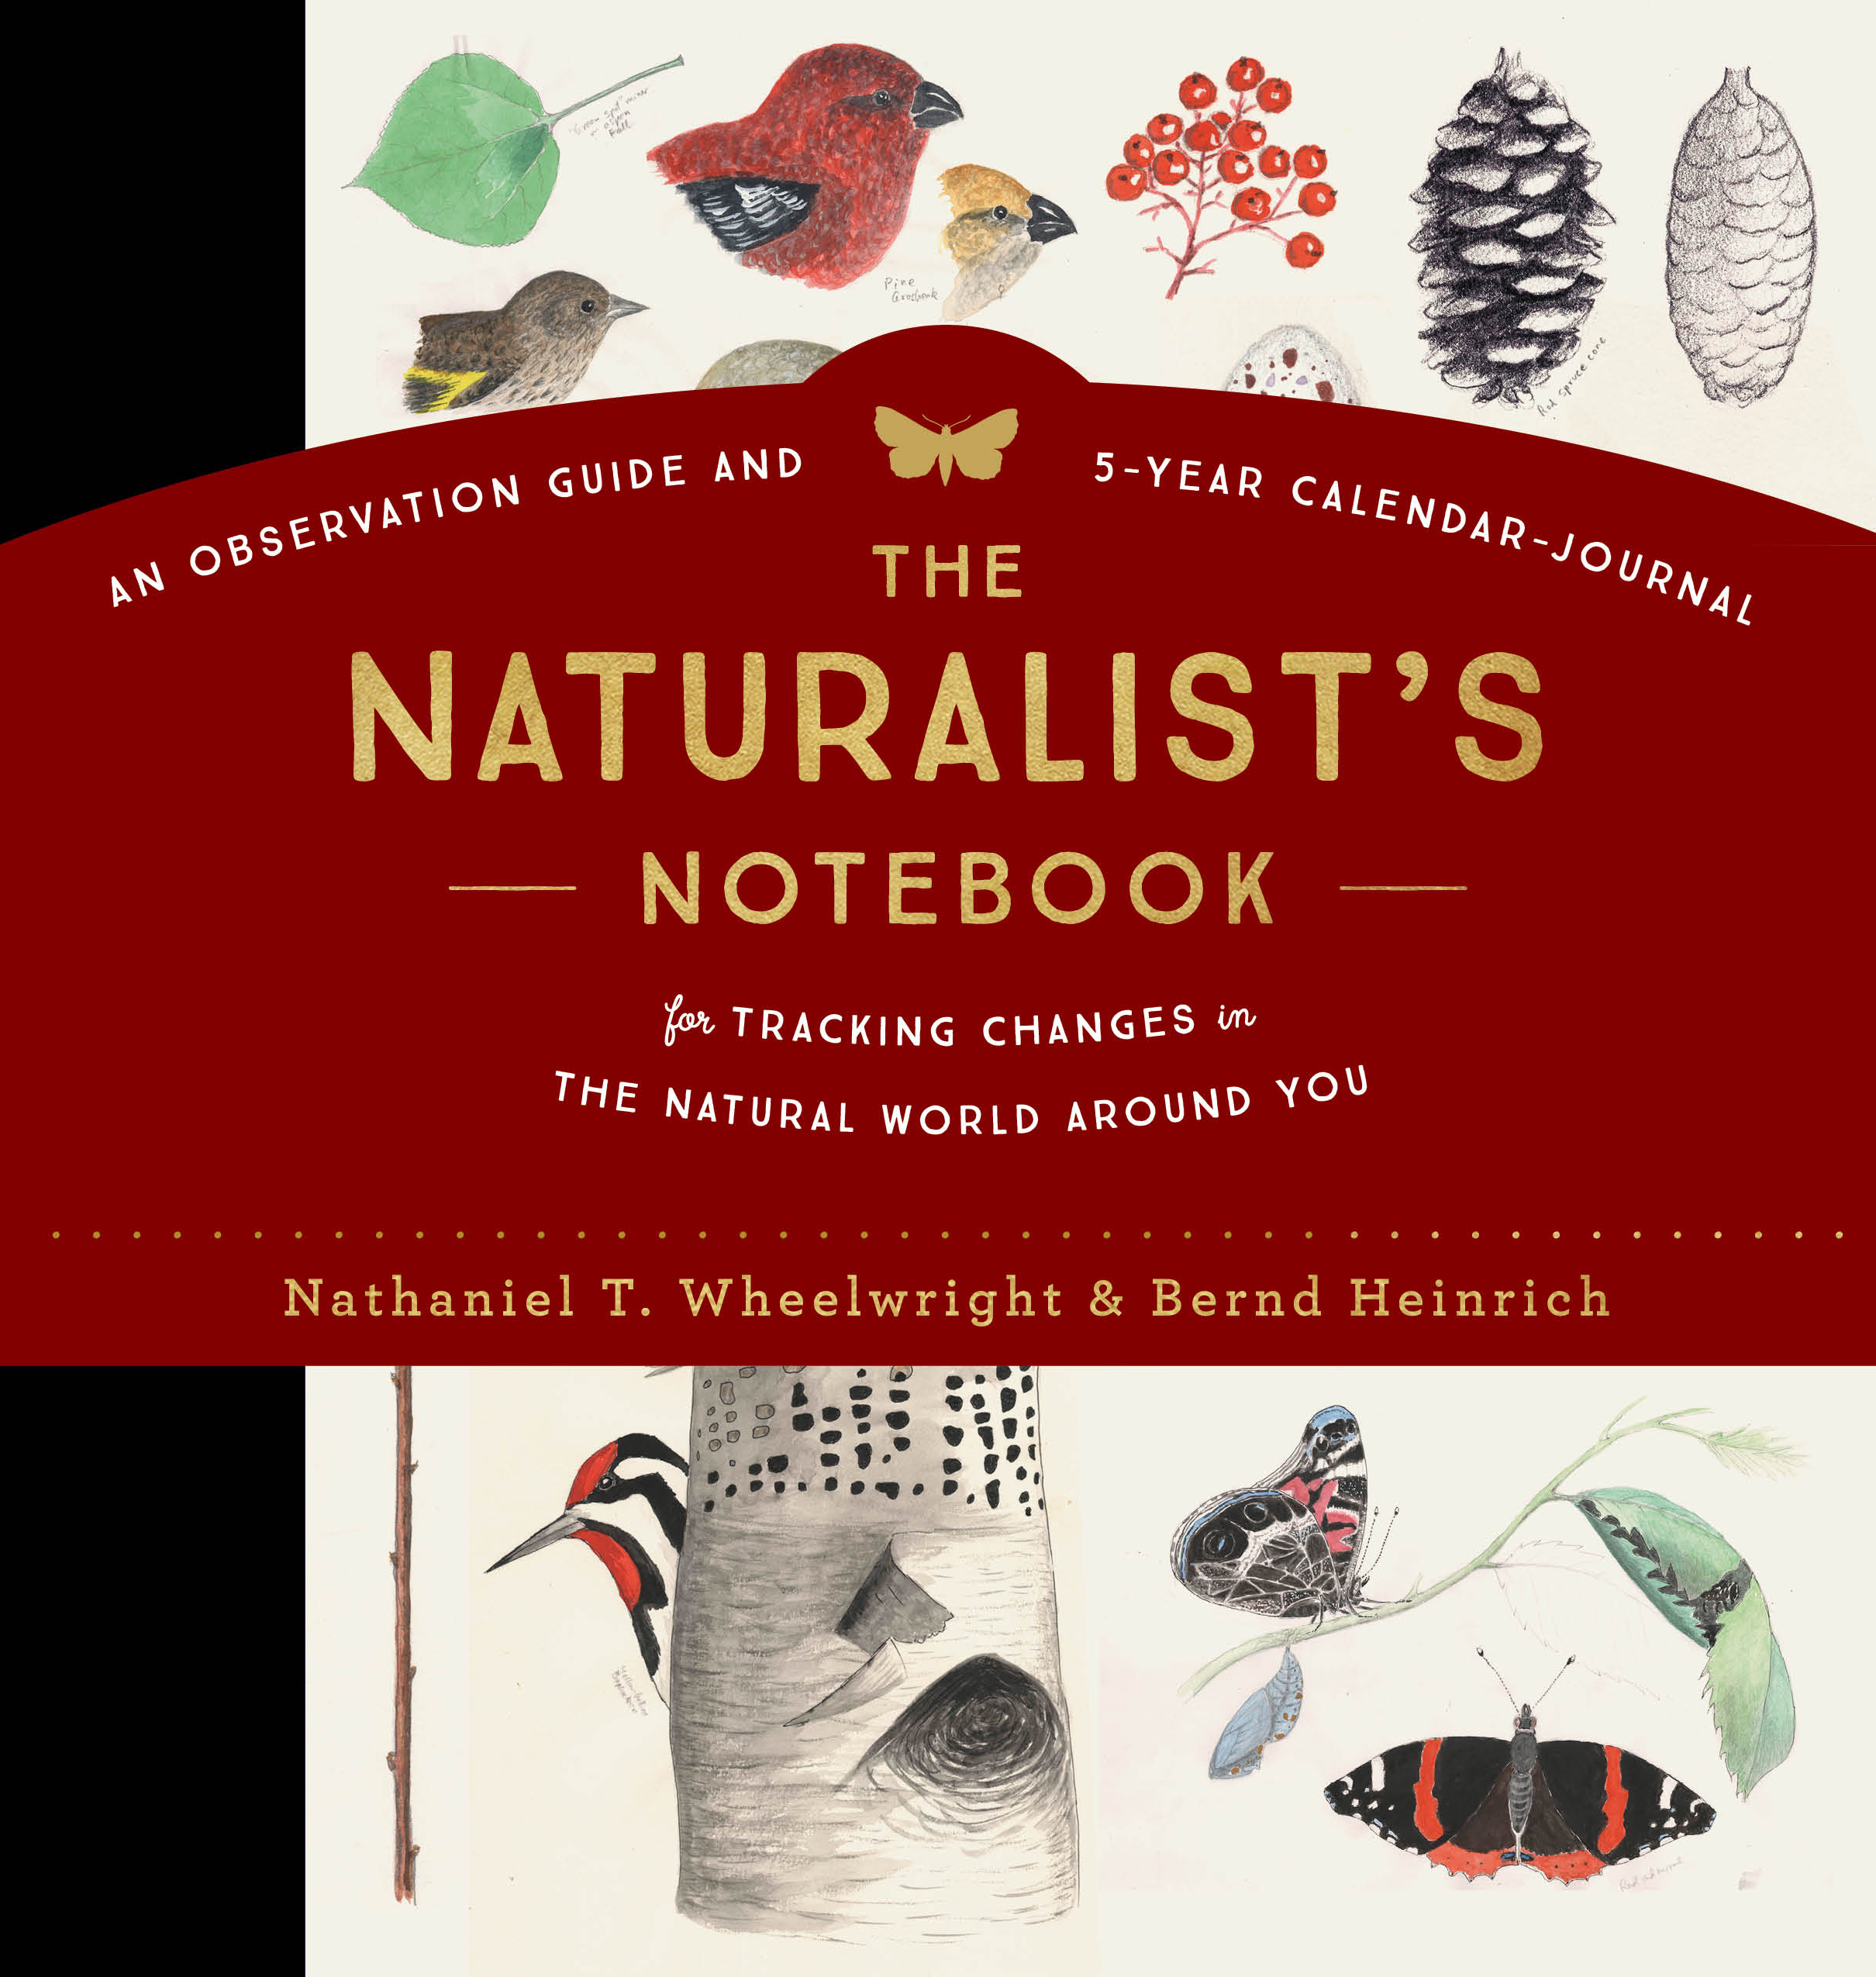 The Naturalist's Notebook An Observation Guide and 5-Year Calendar-Journal for Tracking Changes in the Natural World around You - Nathaniel T. Wheelwright